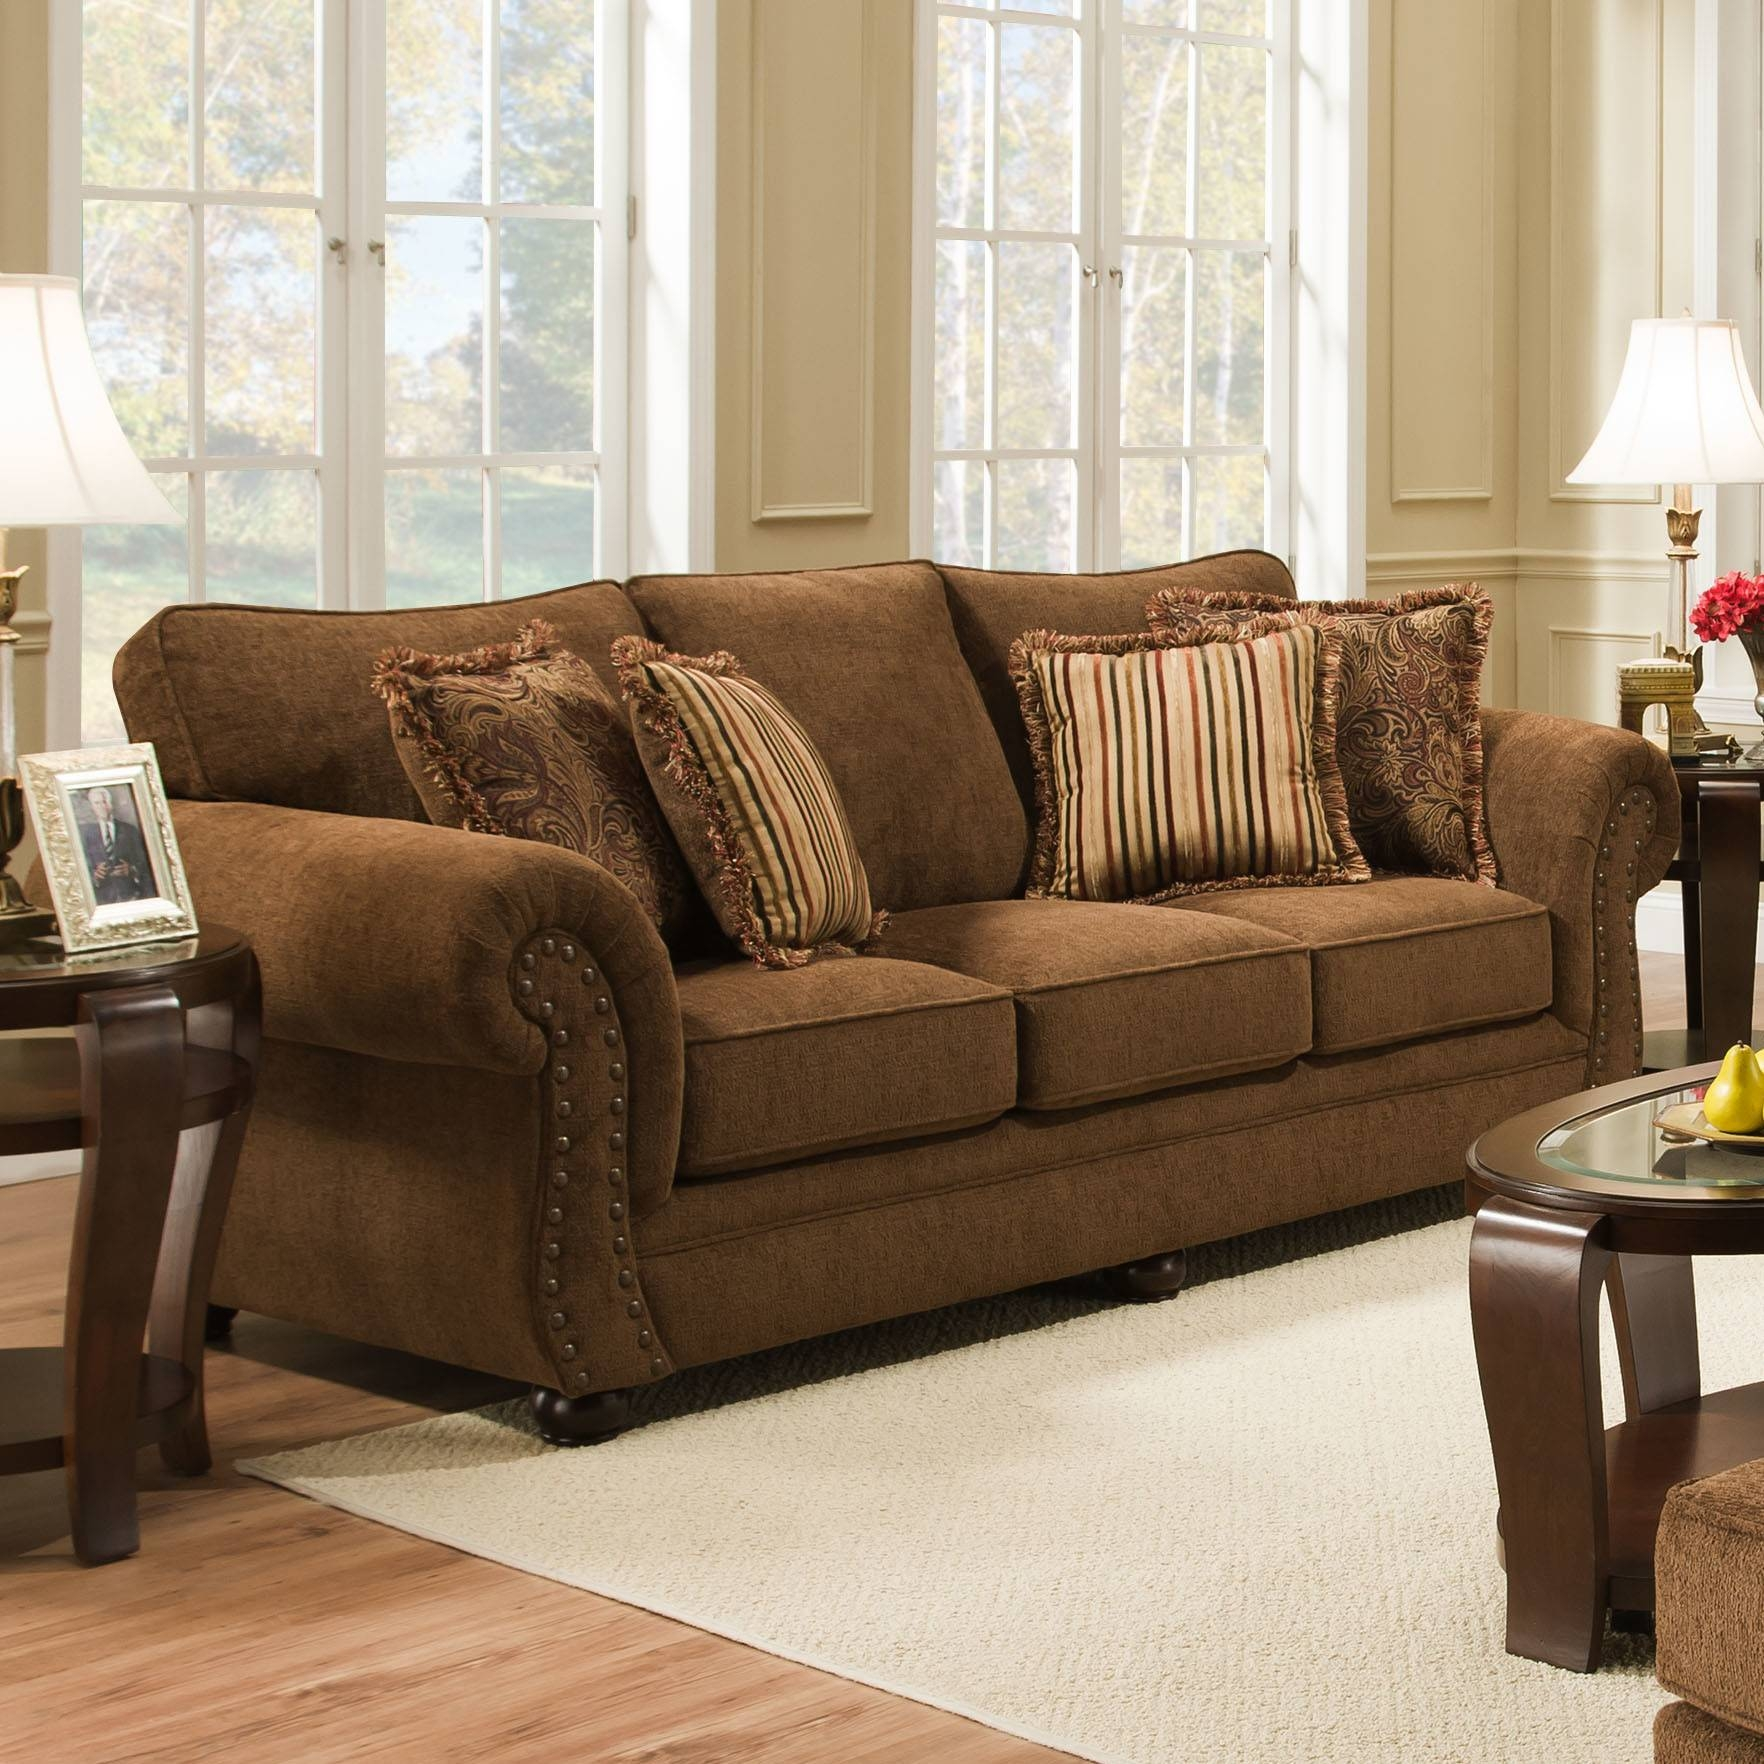 Fancy Simmons Sofa 84 For Your Living Room Sofa Inspiration With with Simmons Sofas (Image 2 of 15)